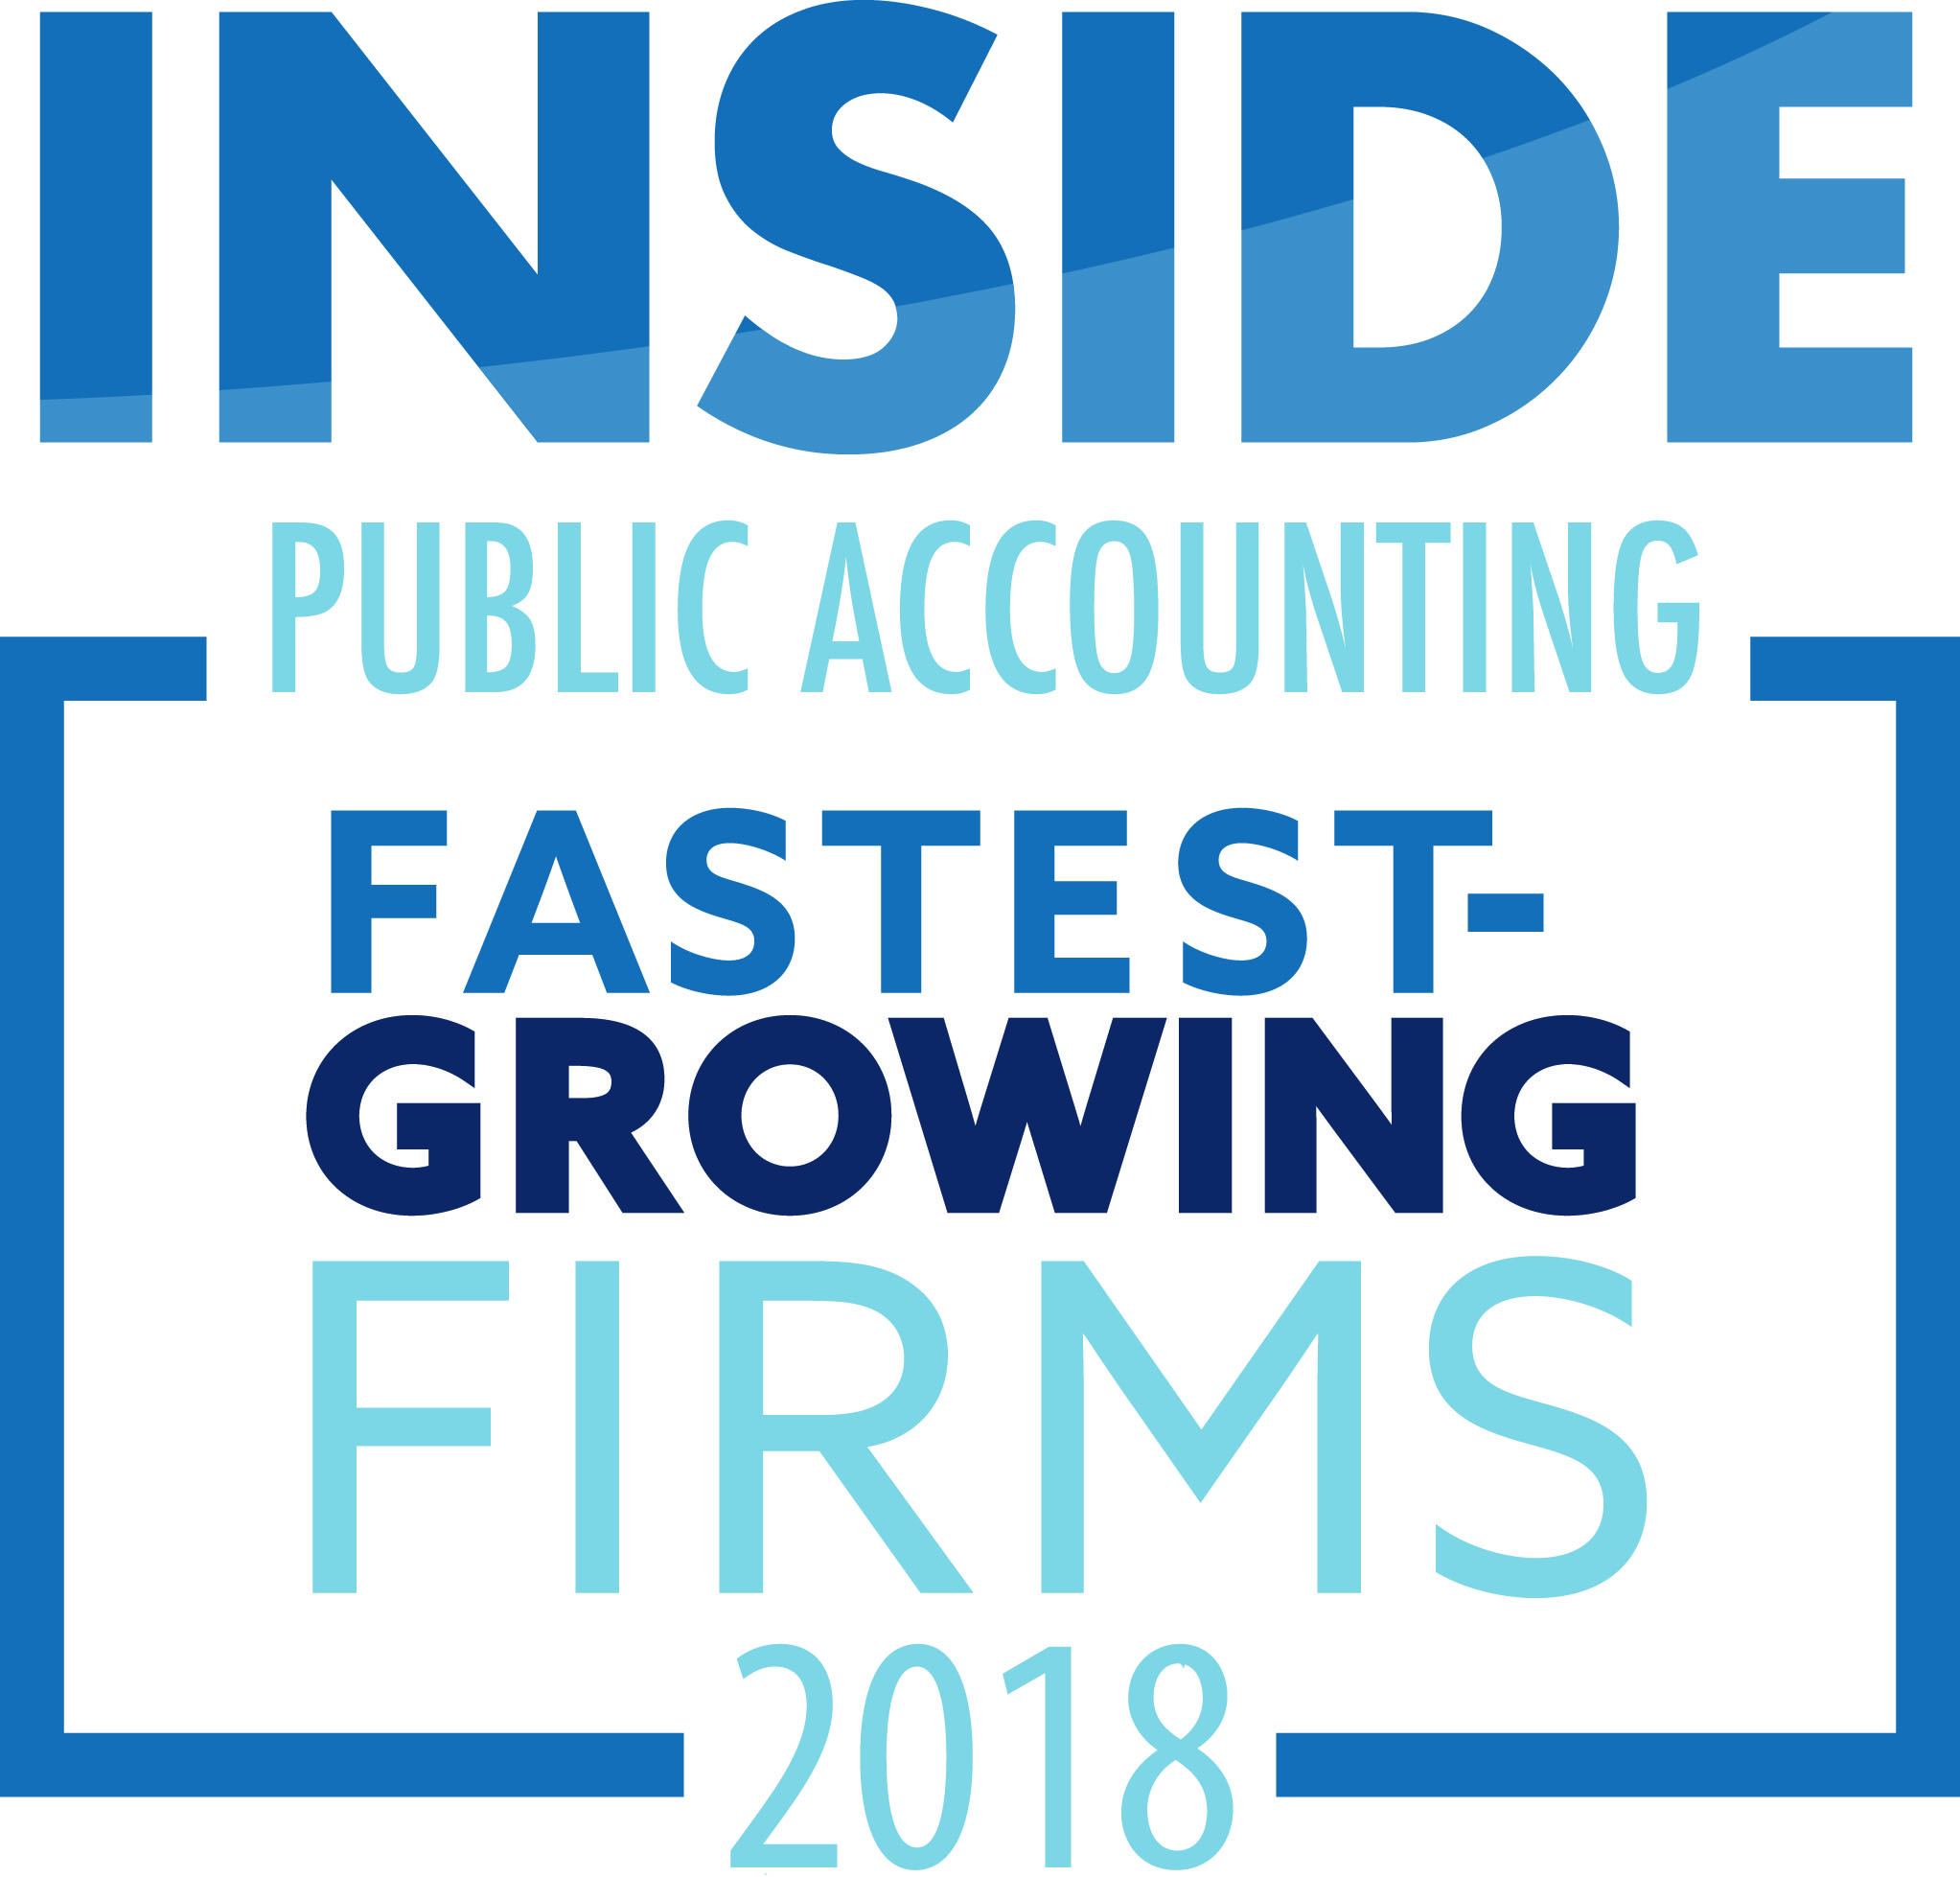 IPA Fastest Growing